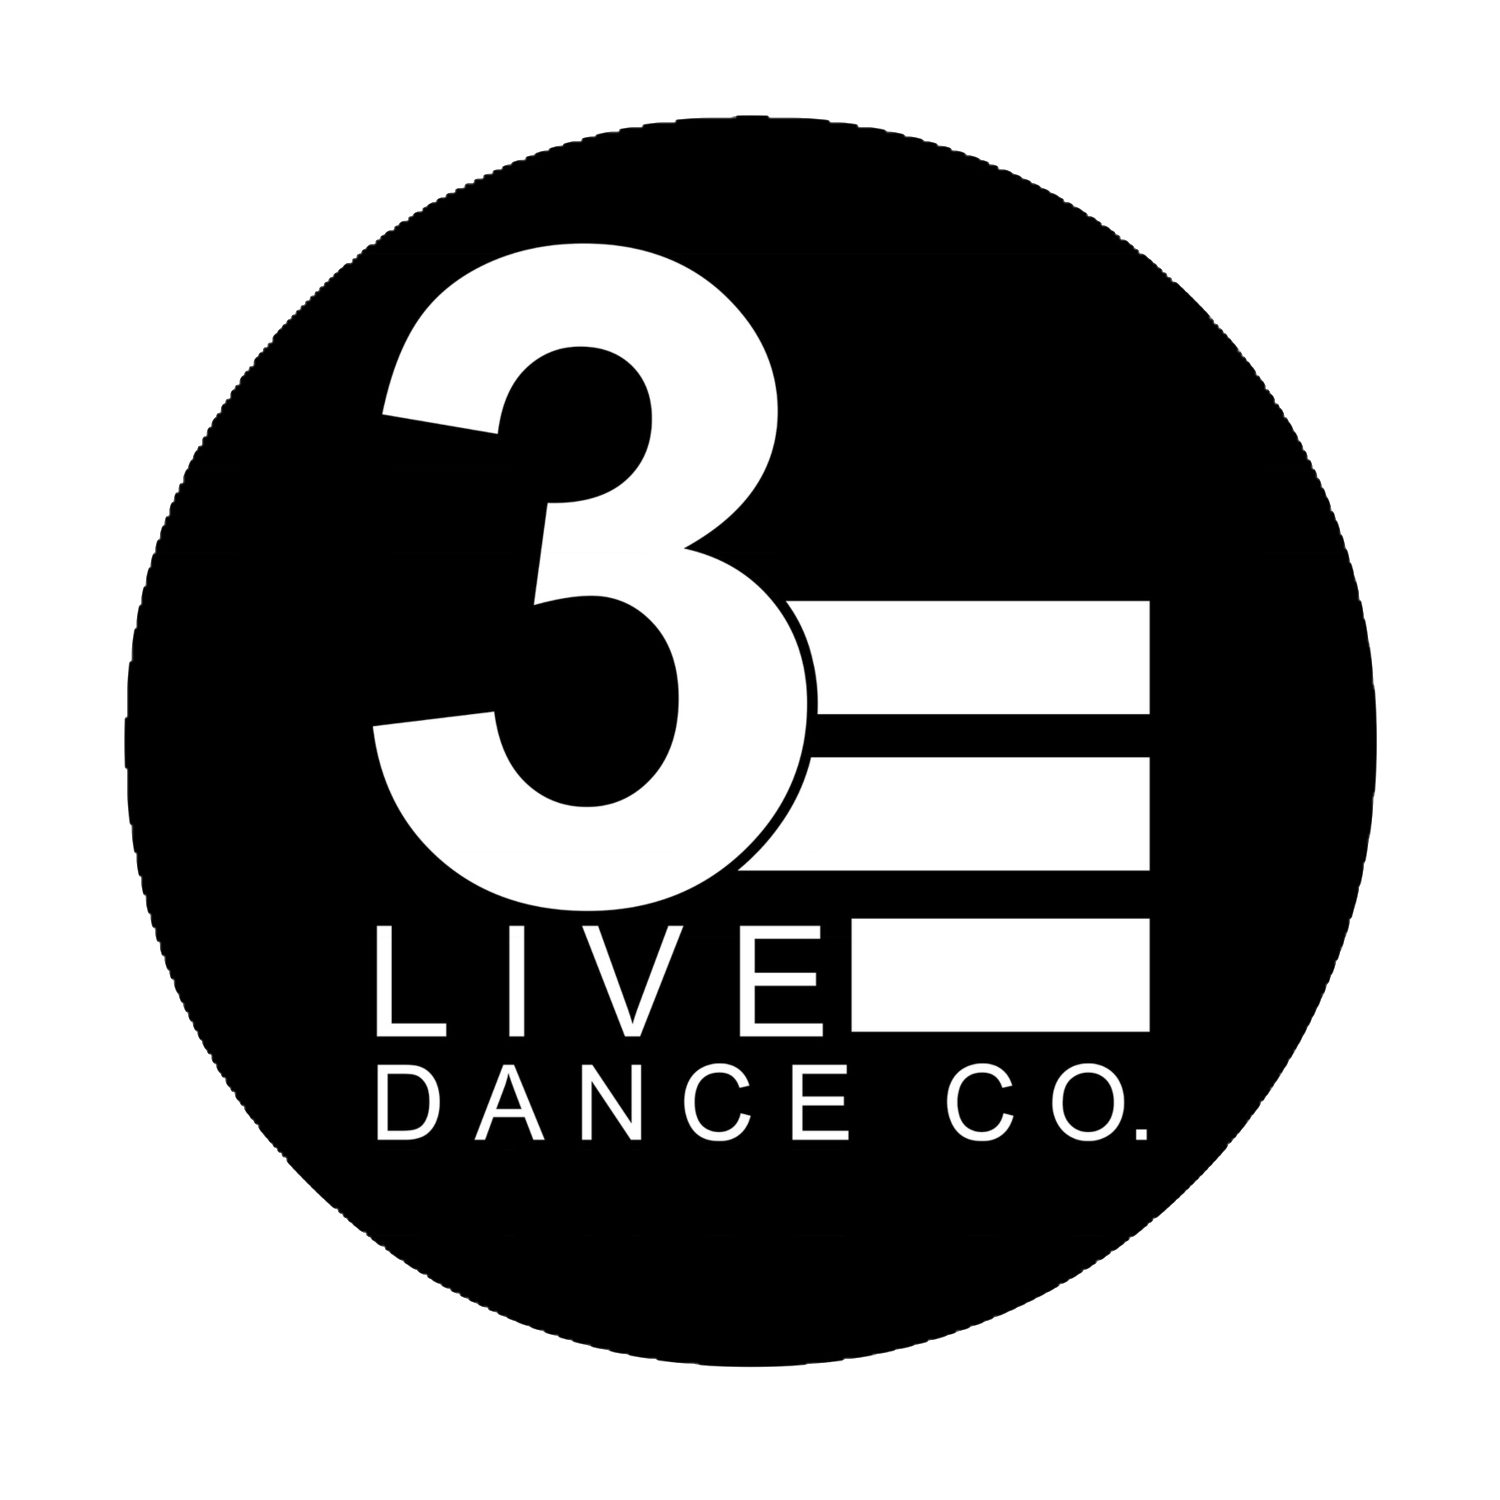 THR3E LIVE DANCE CO.